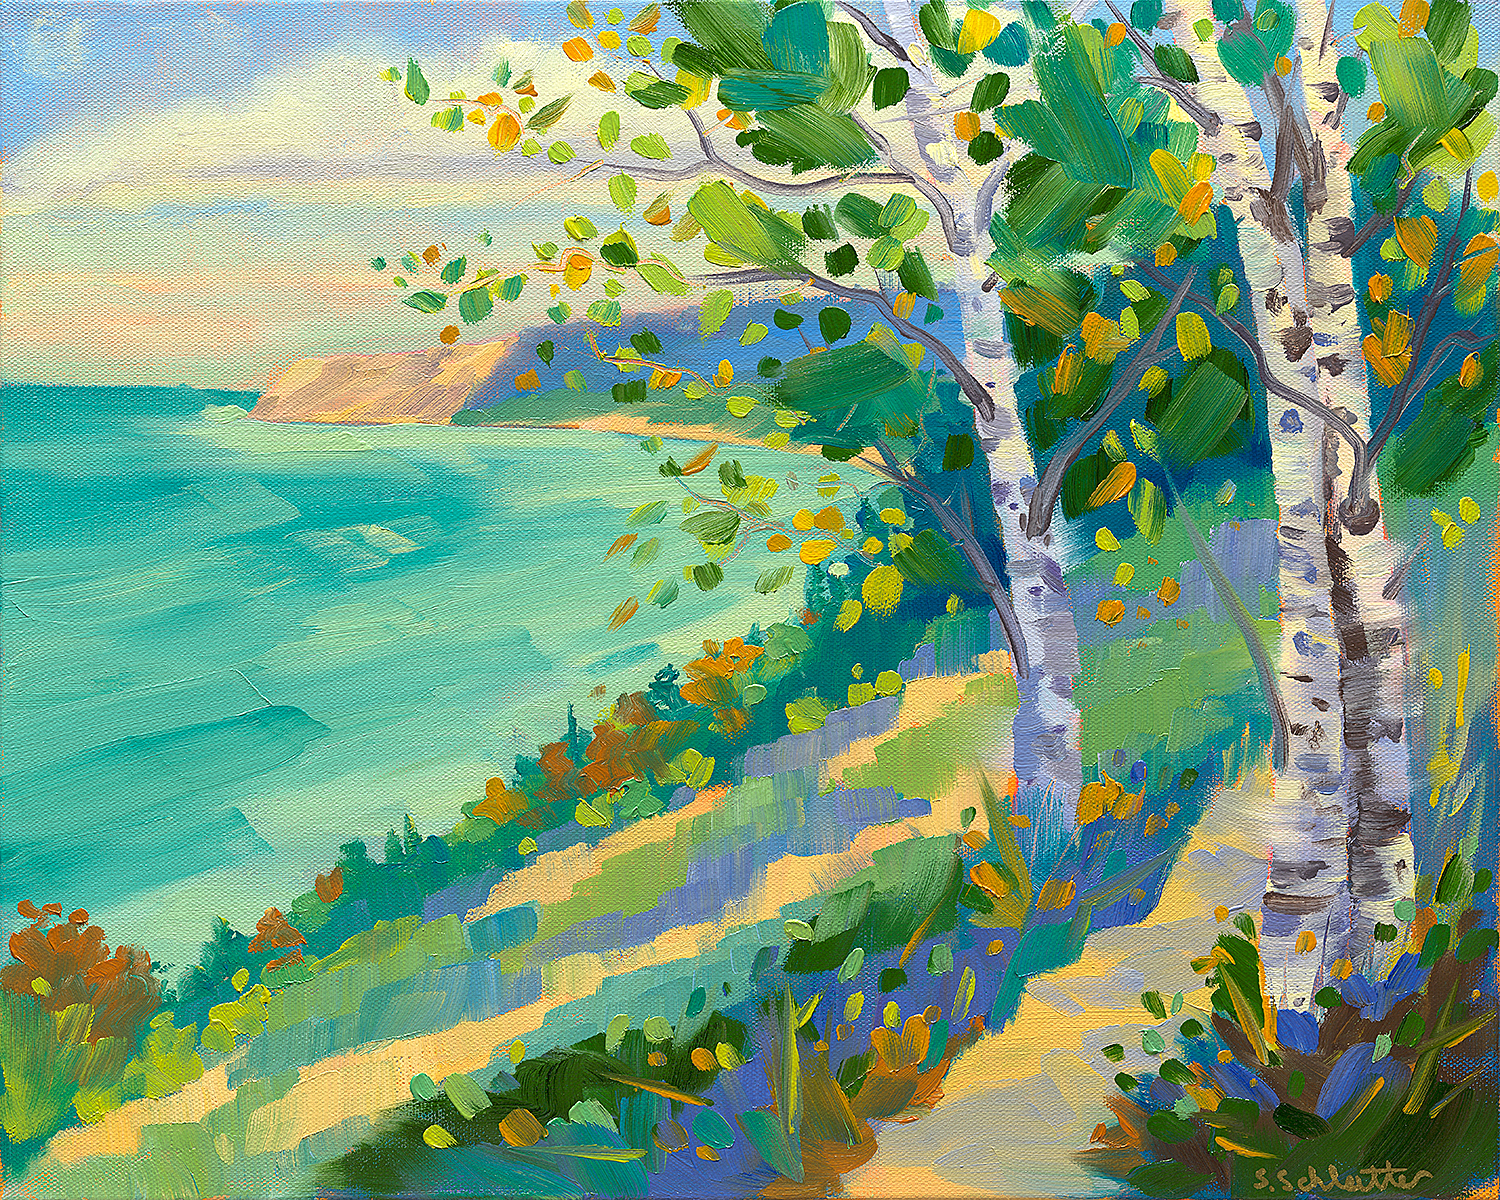 A Heavenly View Painting by Stephanie Schlatter